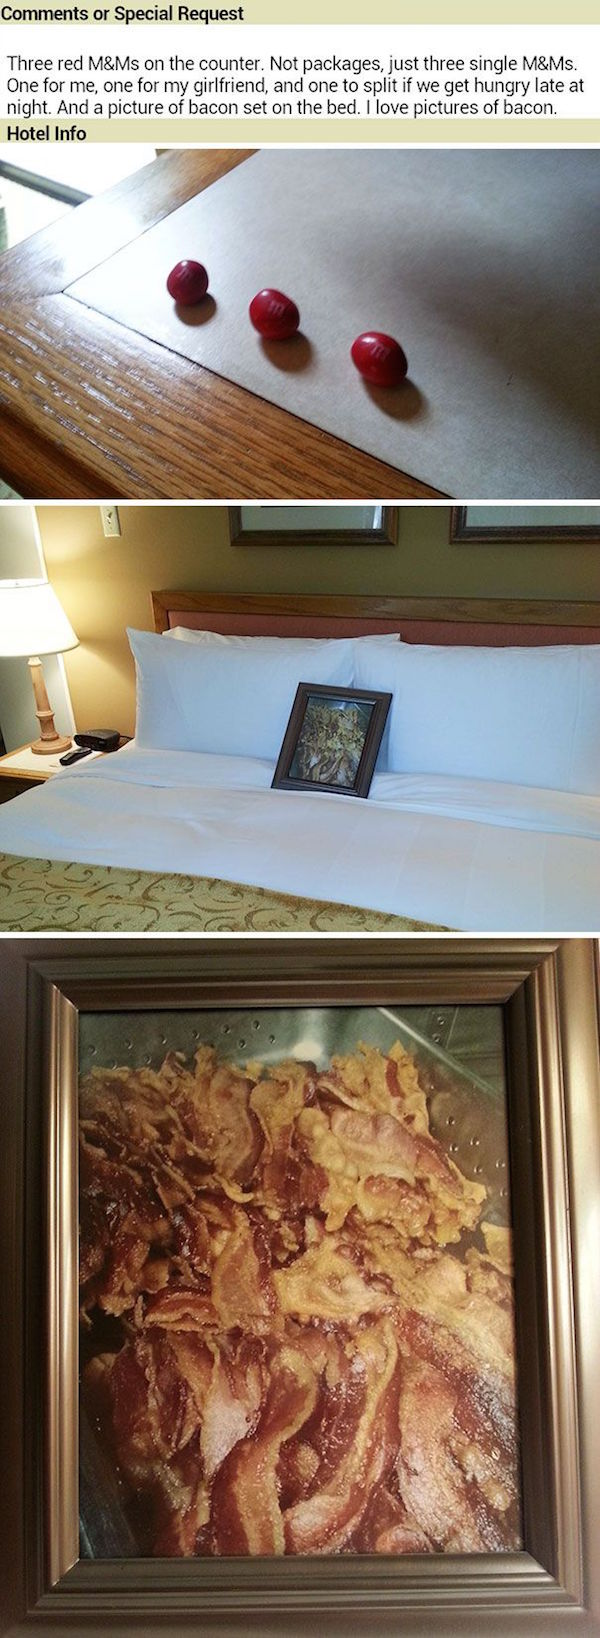 Let's All Get Real Weird With These Hilarious Hotel Requests Funny Hotel Story